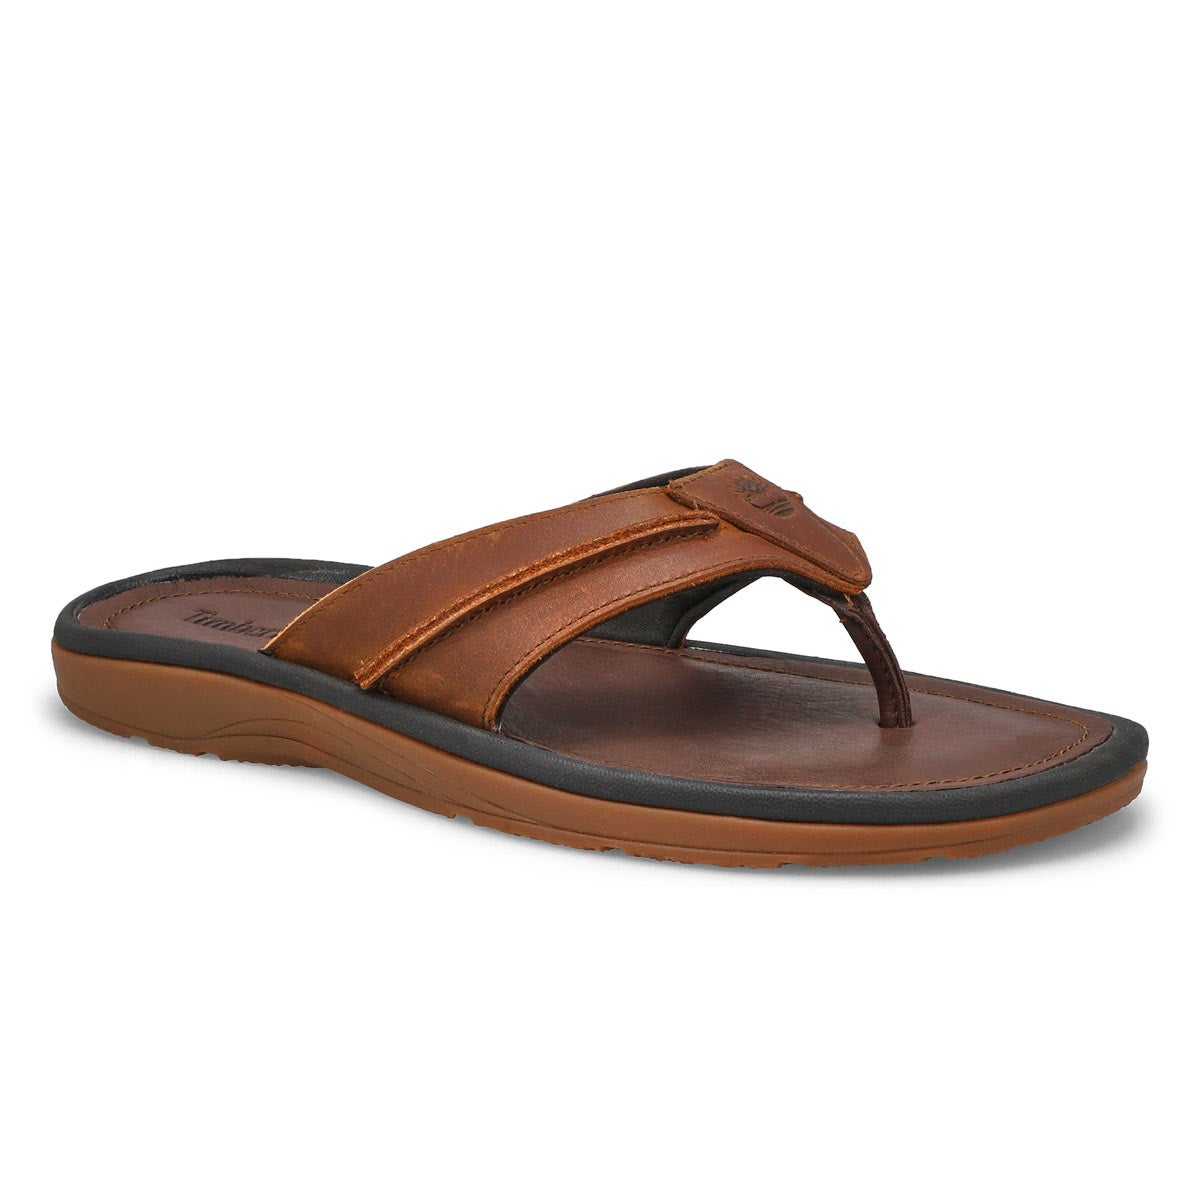 Men's EARTHKEEPERS brown oiled thong sandals